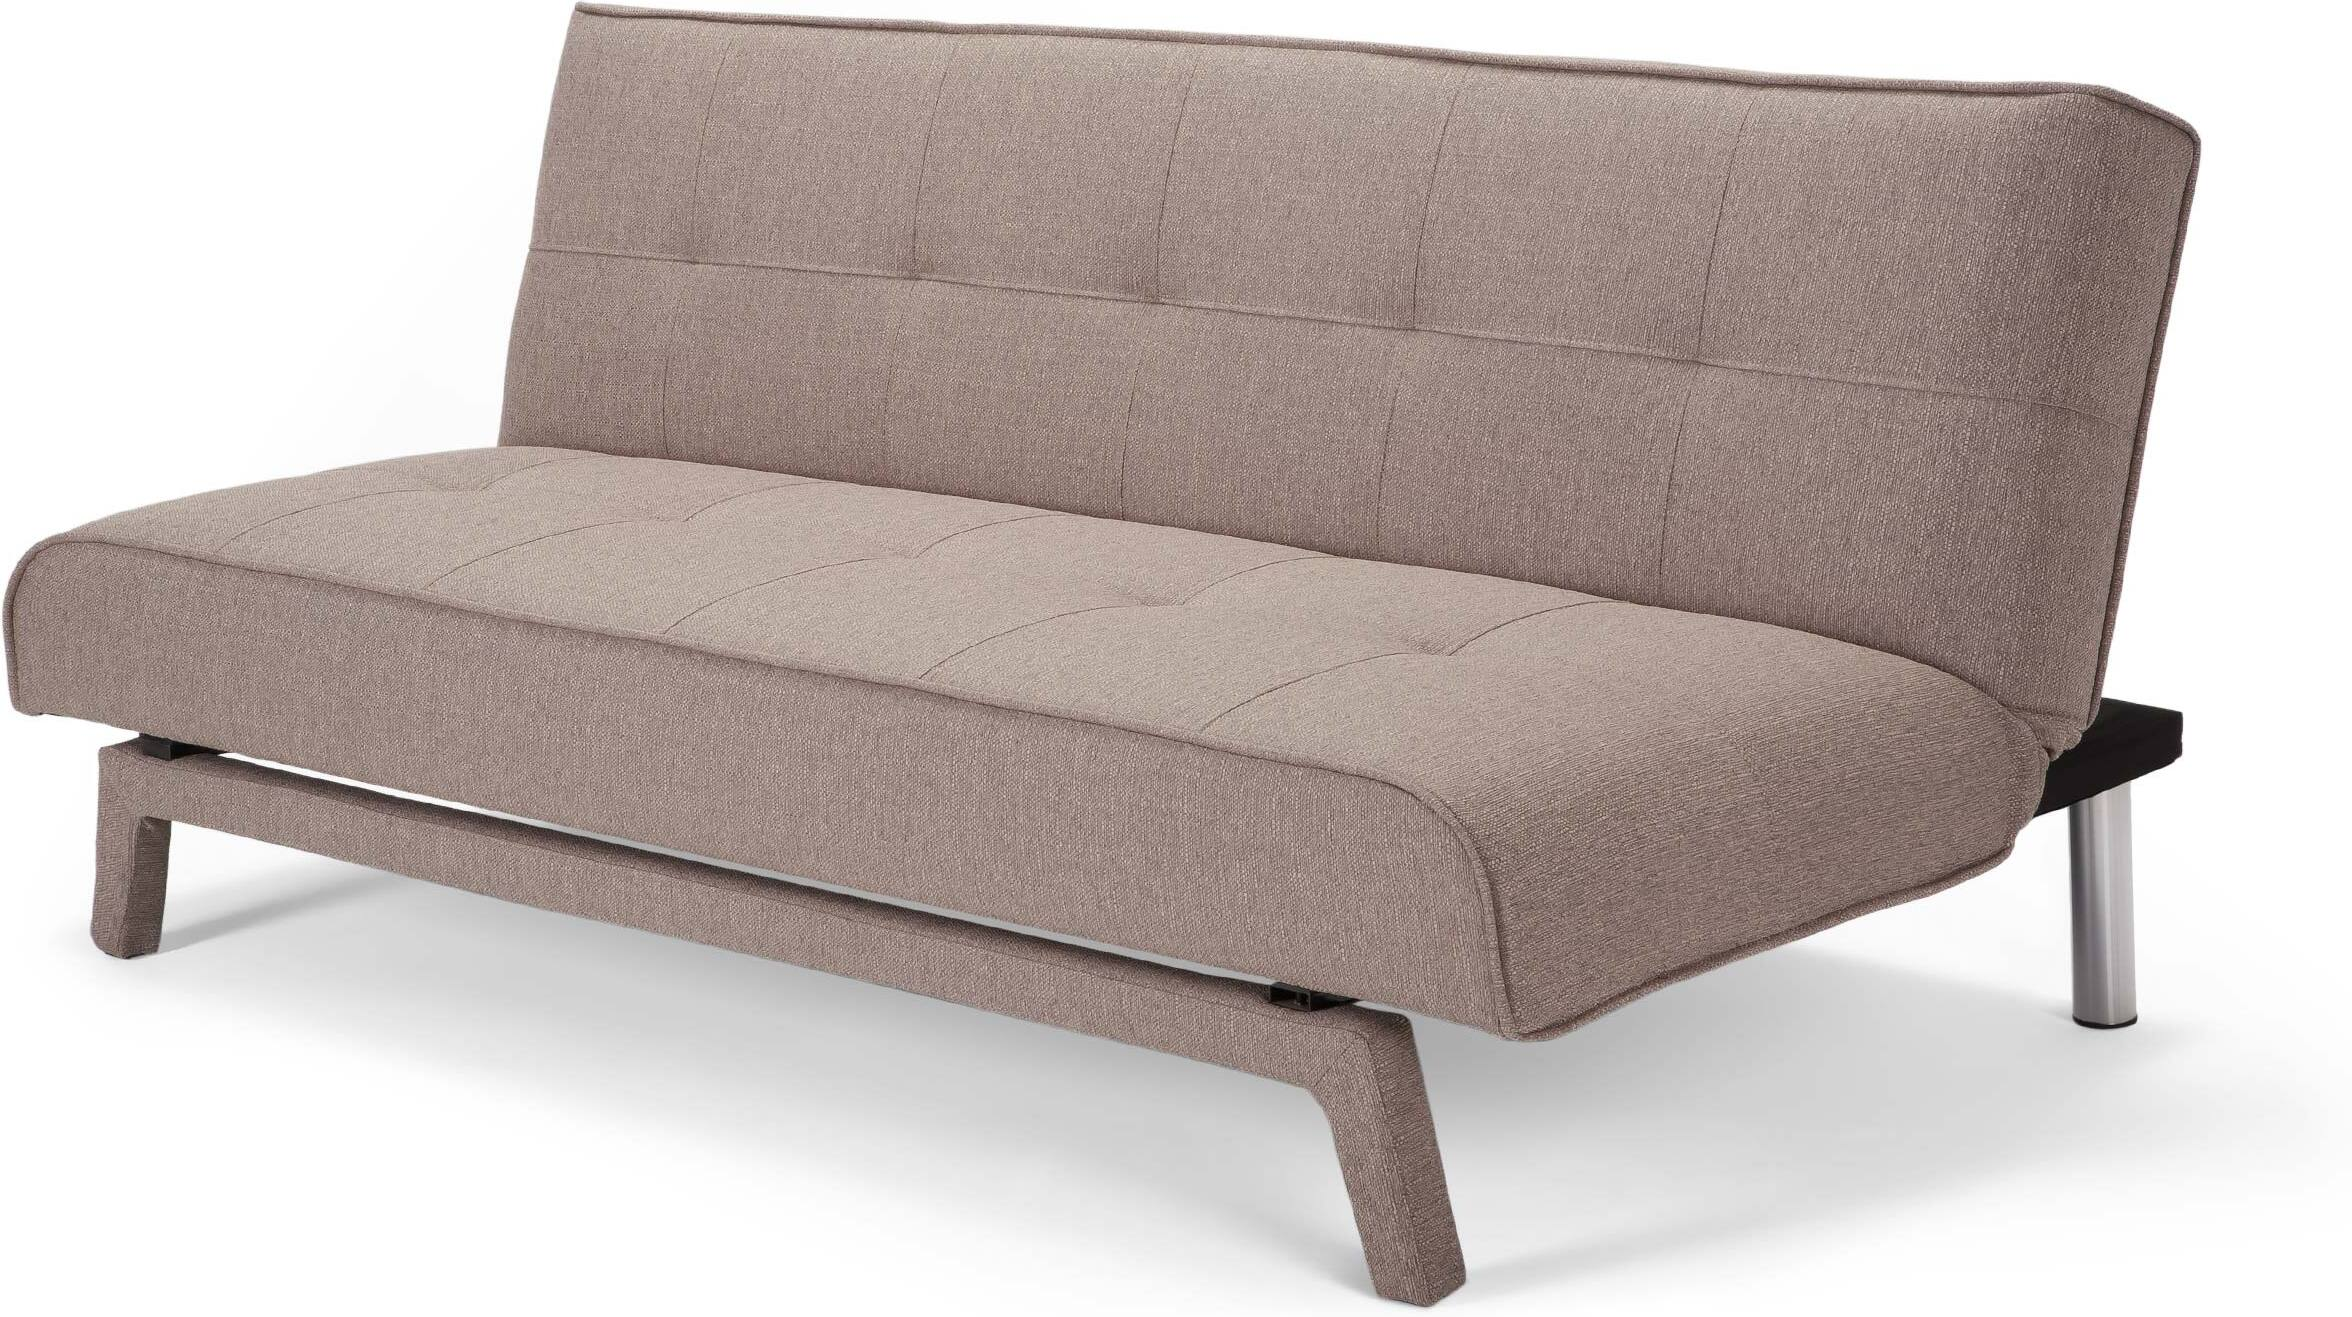 Buy cheap yoko sofa bed compare products prices for best for Cheap sofa packages